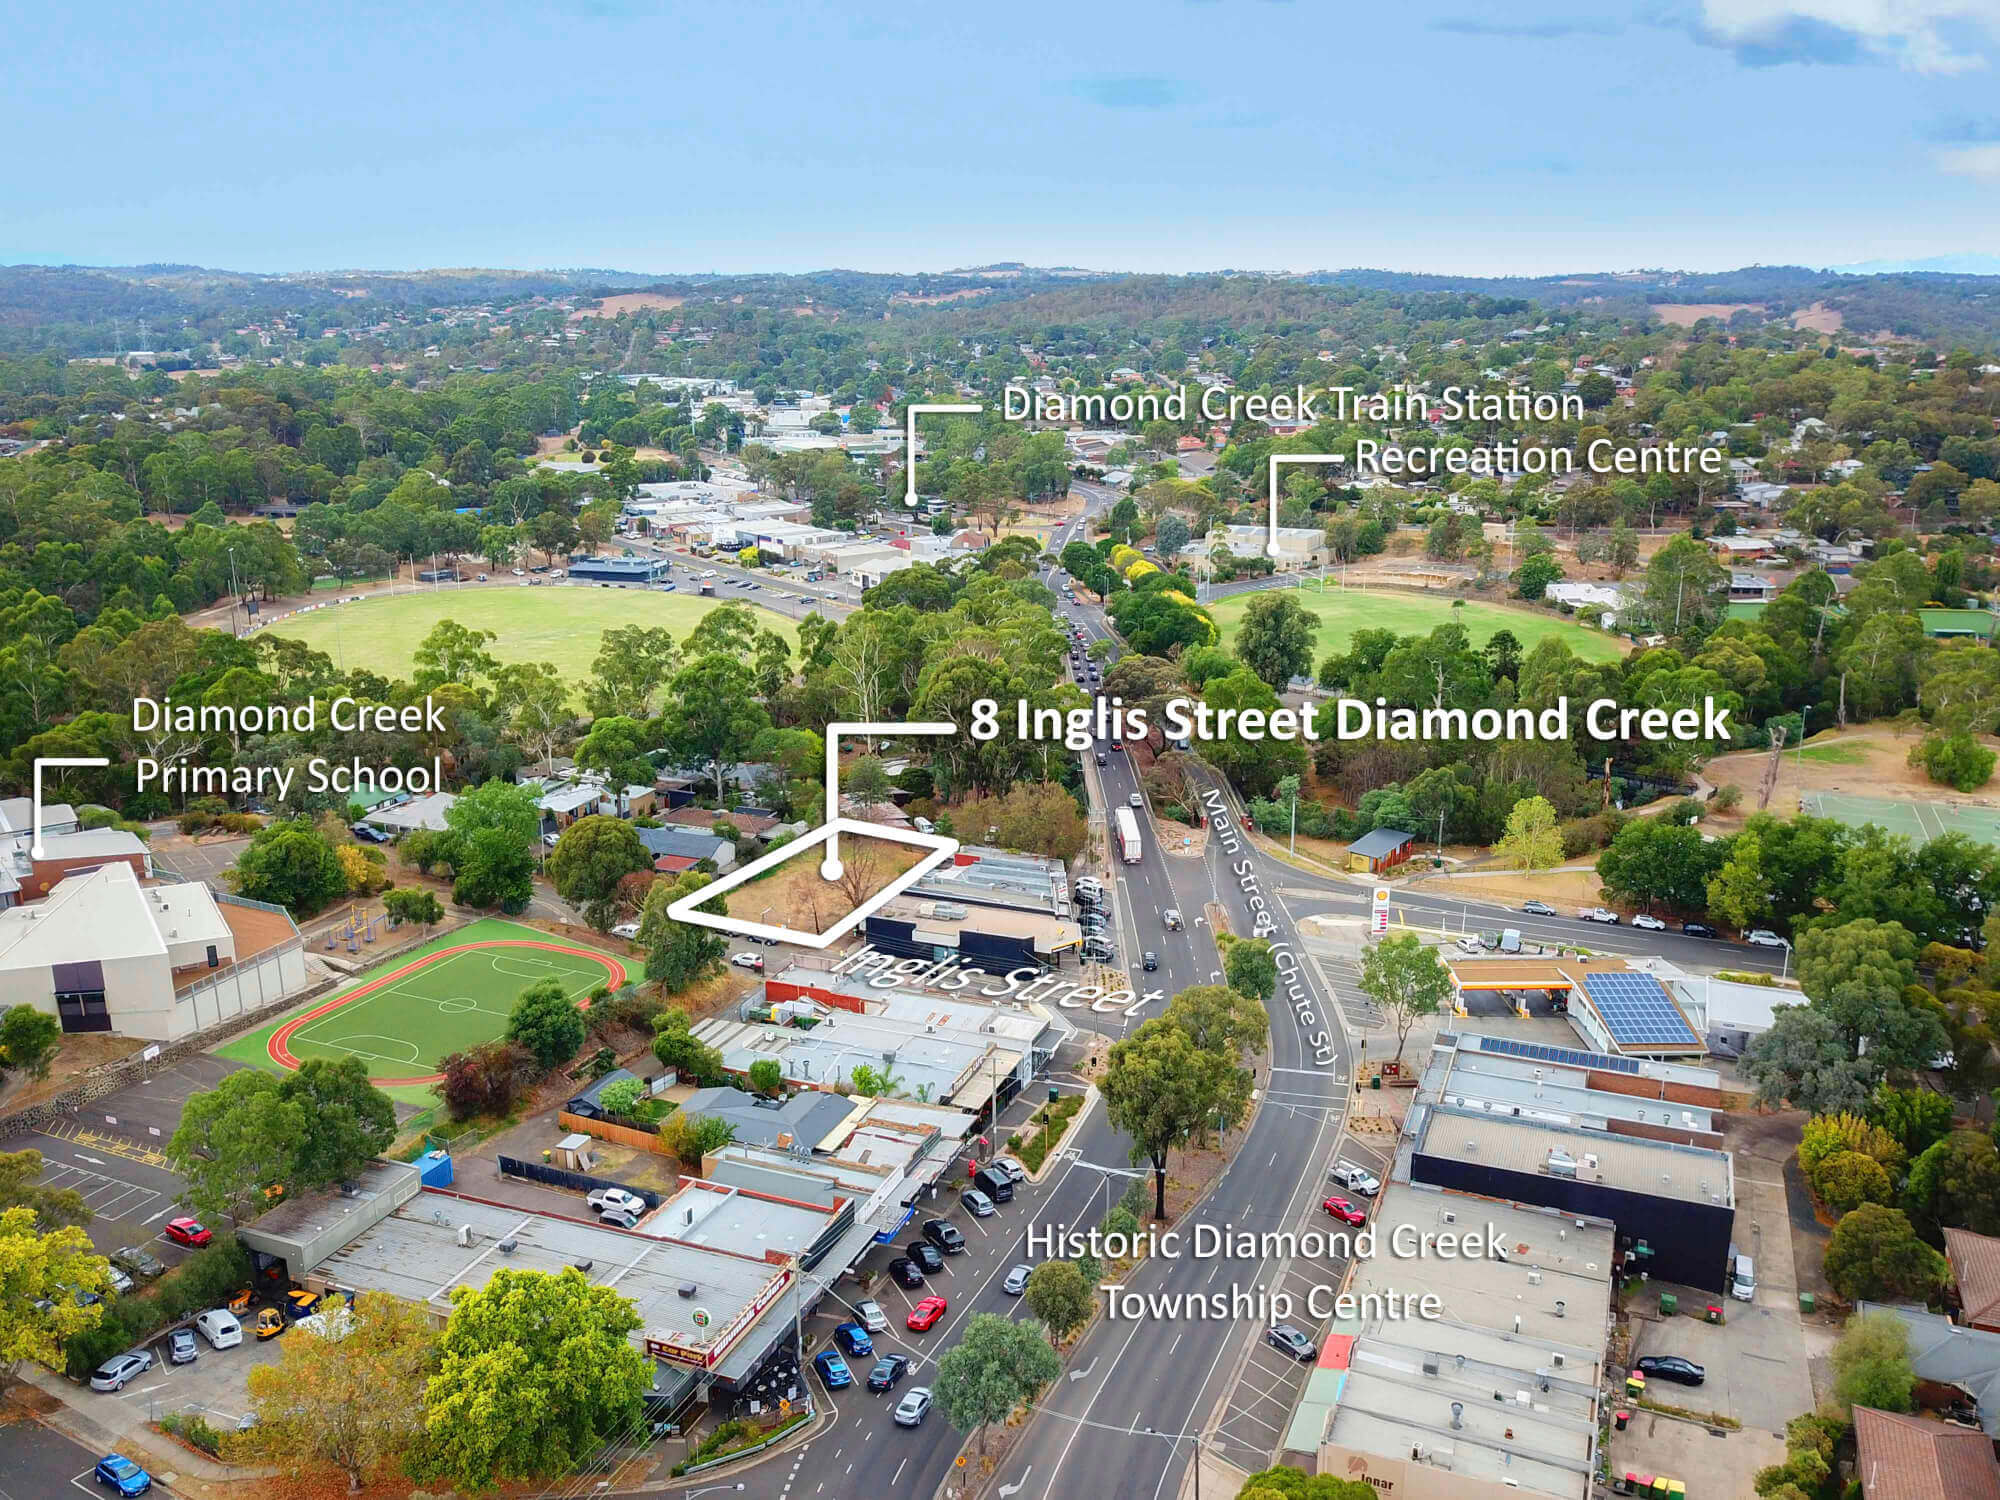 Property for sale 8 Inglis Street Diamond Creek VIC 3089